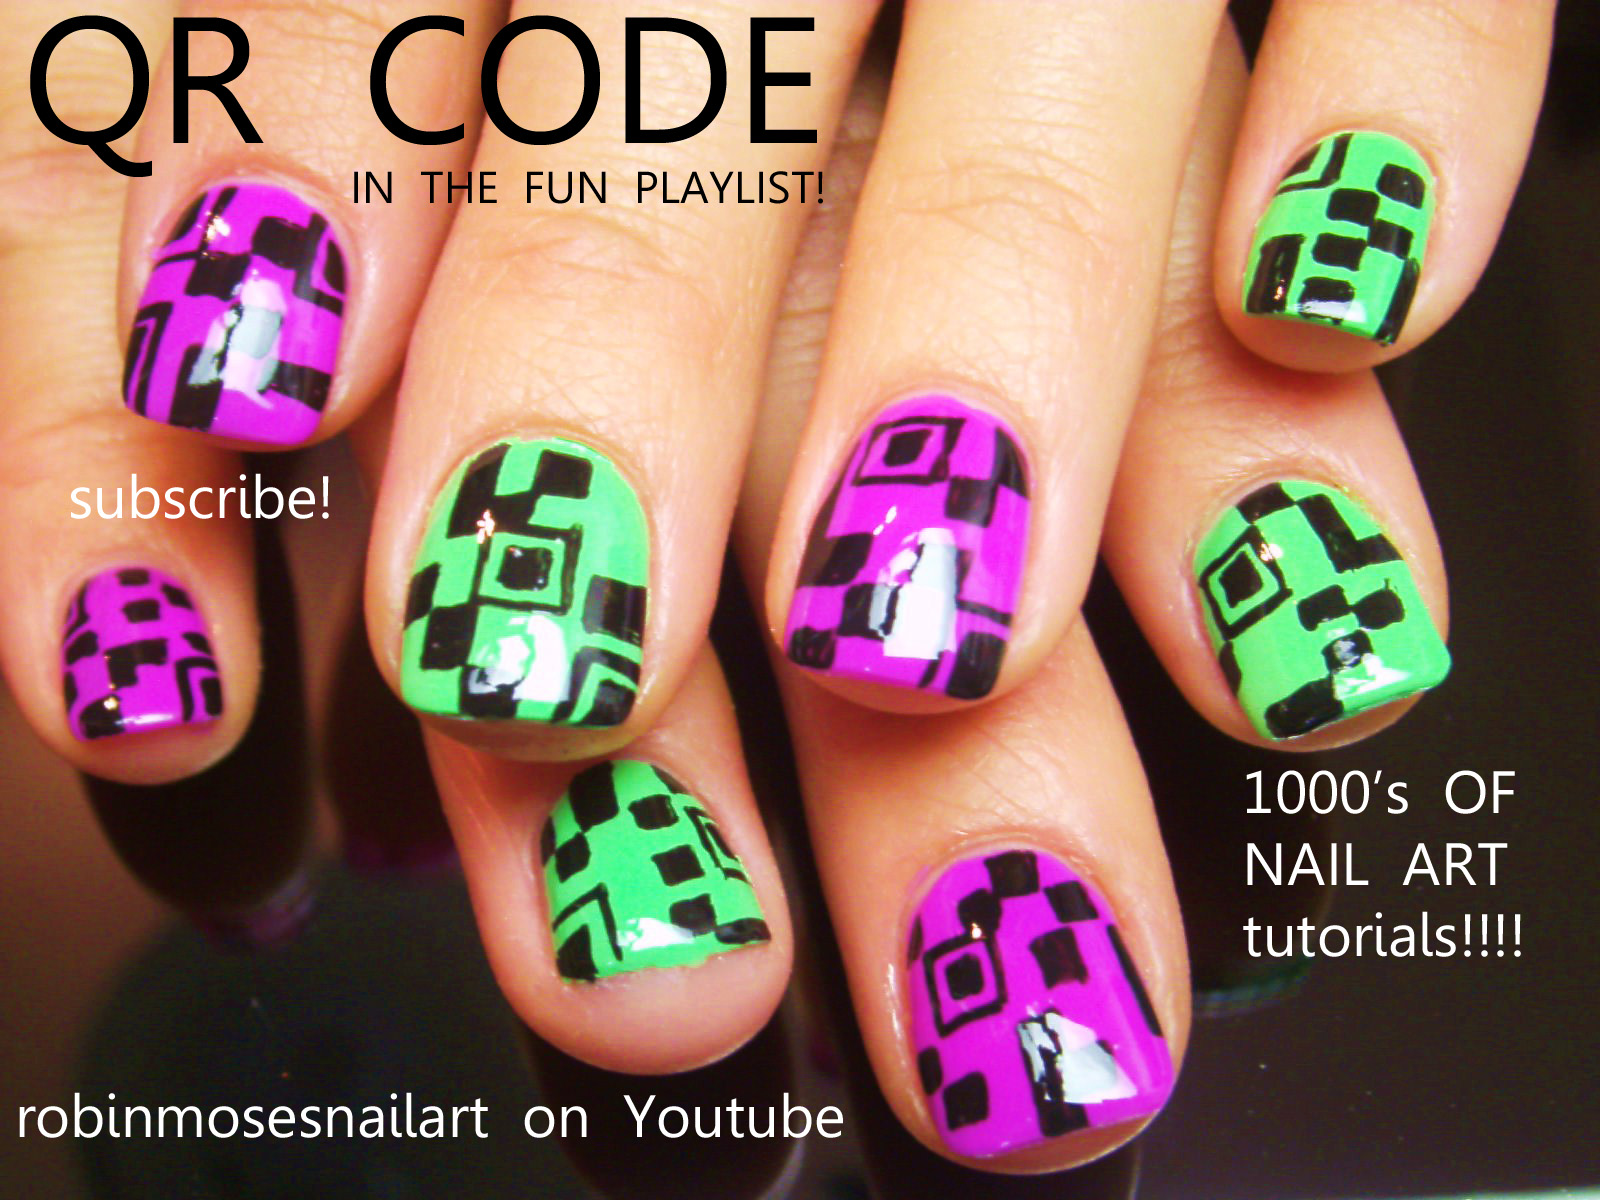 Lick my ice cream nails borgore nails dubstep nails music nails lick my ice cream nails borgore nails dubstep nails music nails dub nails long nails qr code short nails easy nails club nails party nails nail prinsesfo Choice Image